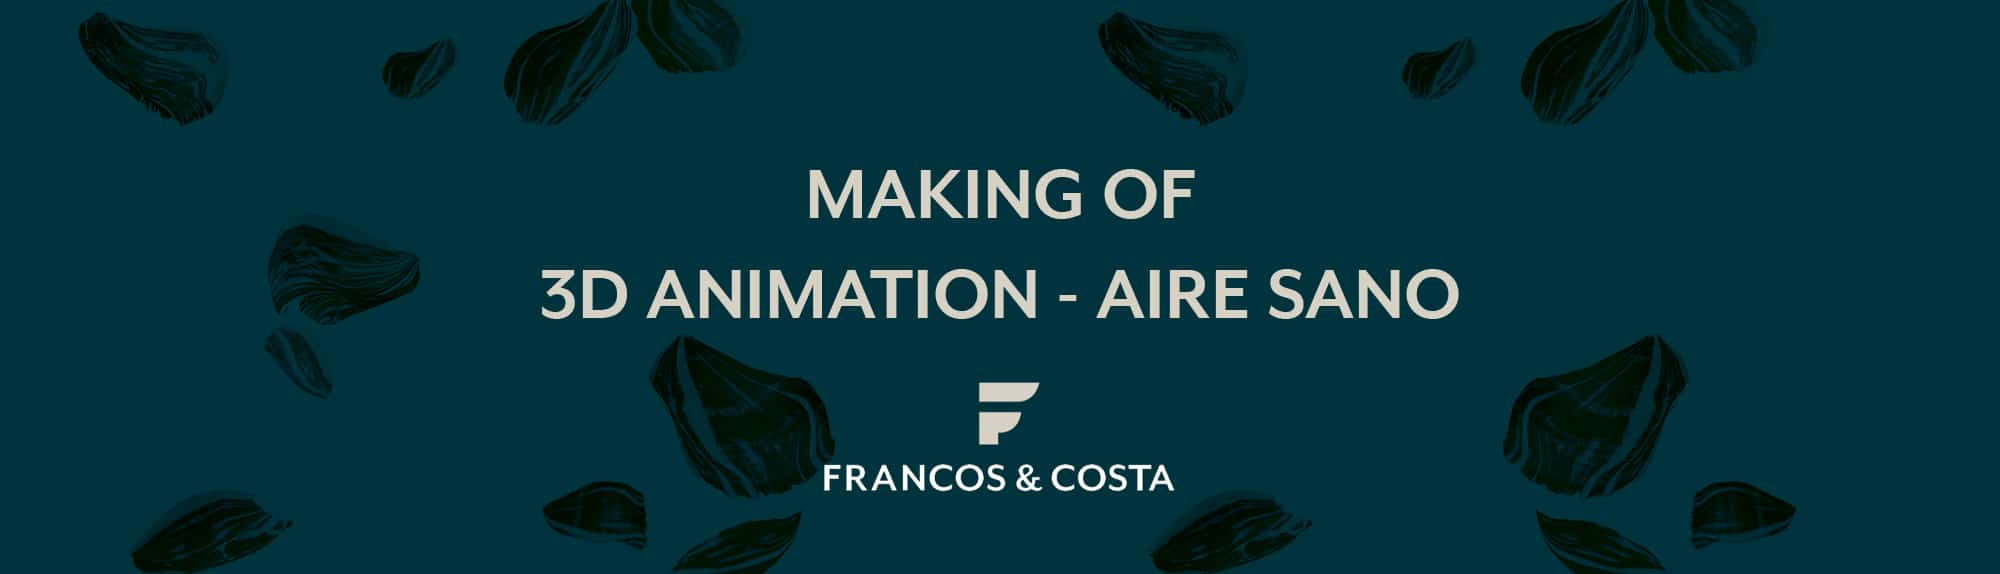 making-of-3d-animation-blog-4-francos-and-costa-architectural-visualisation-agency